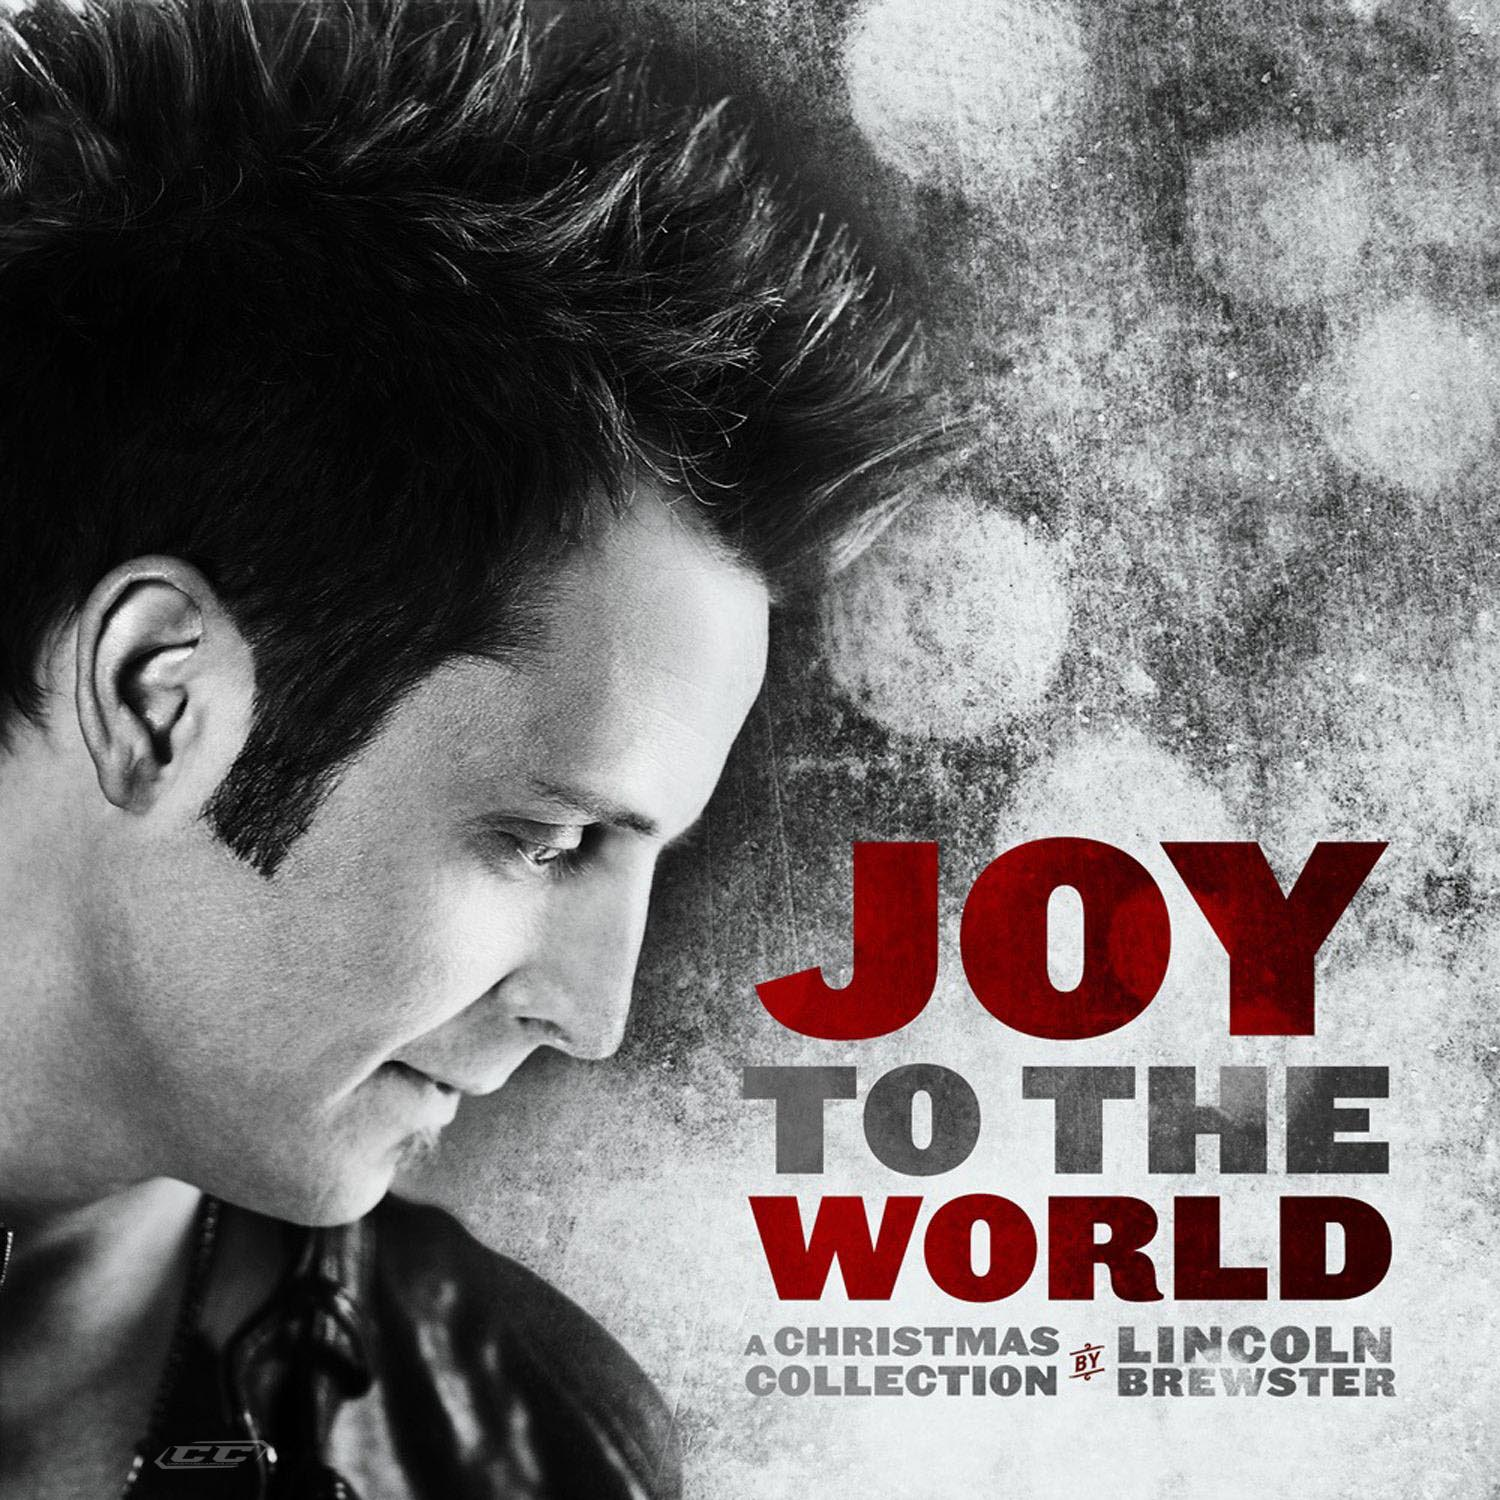 Lincoln Brewster - Joy To The World 2012 English Christmas Album